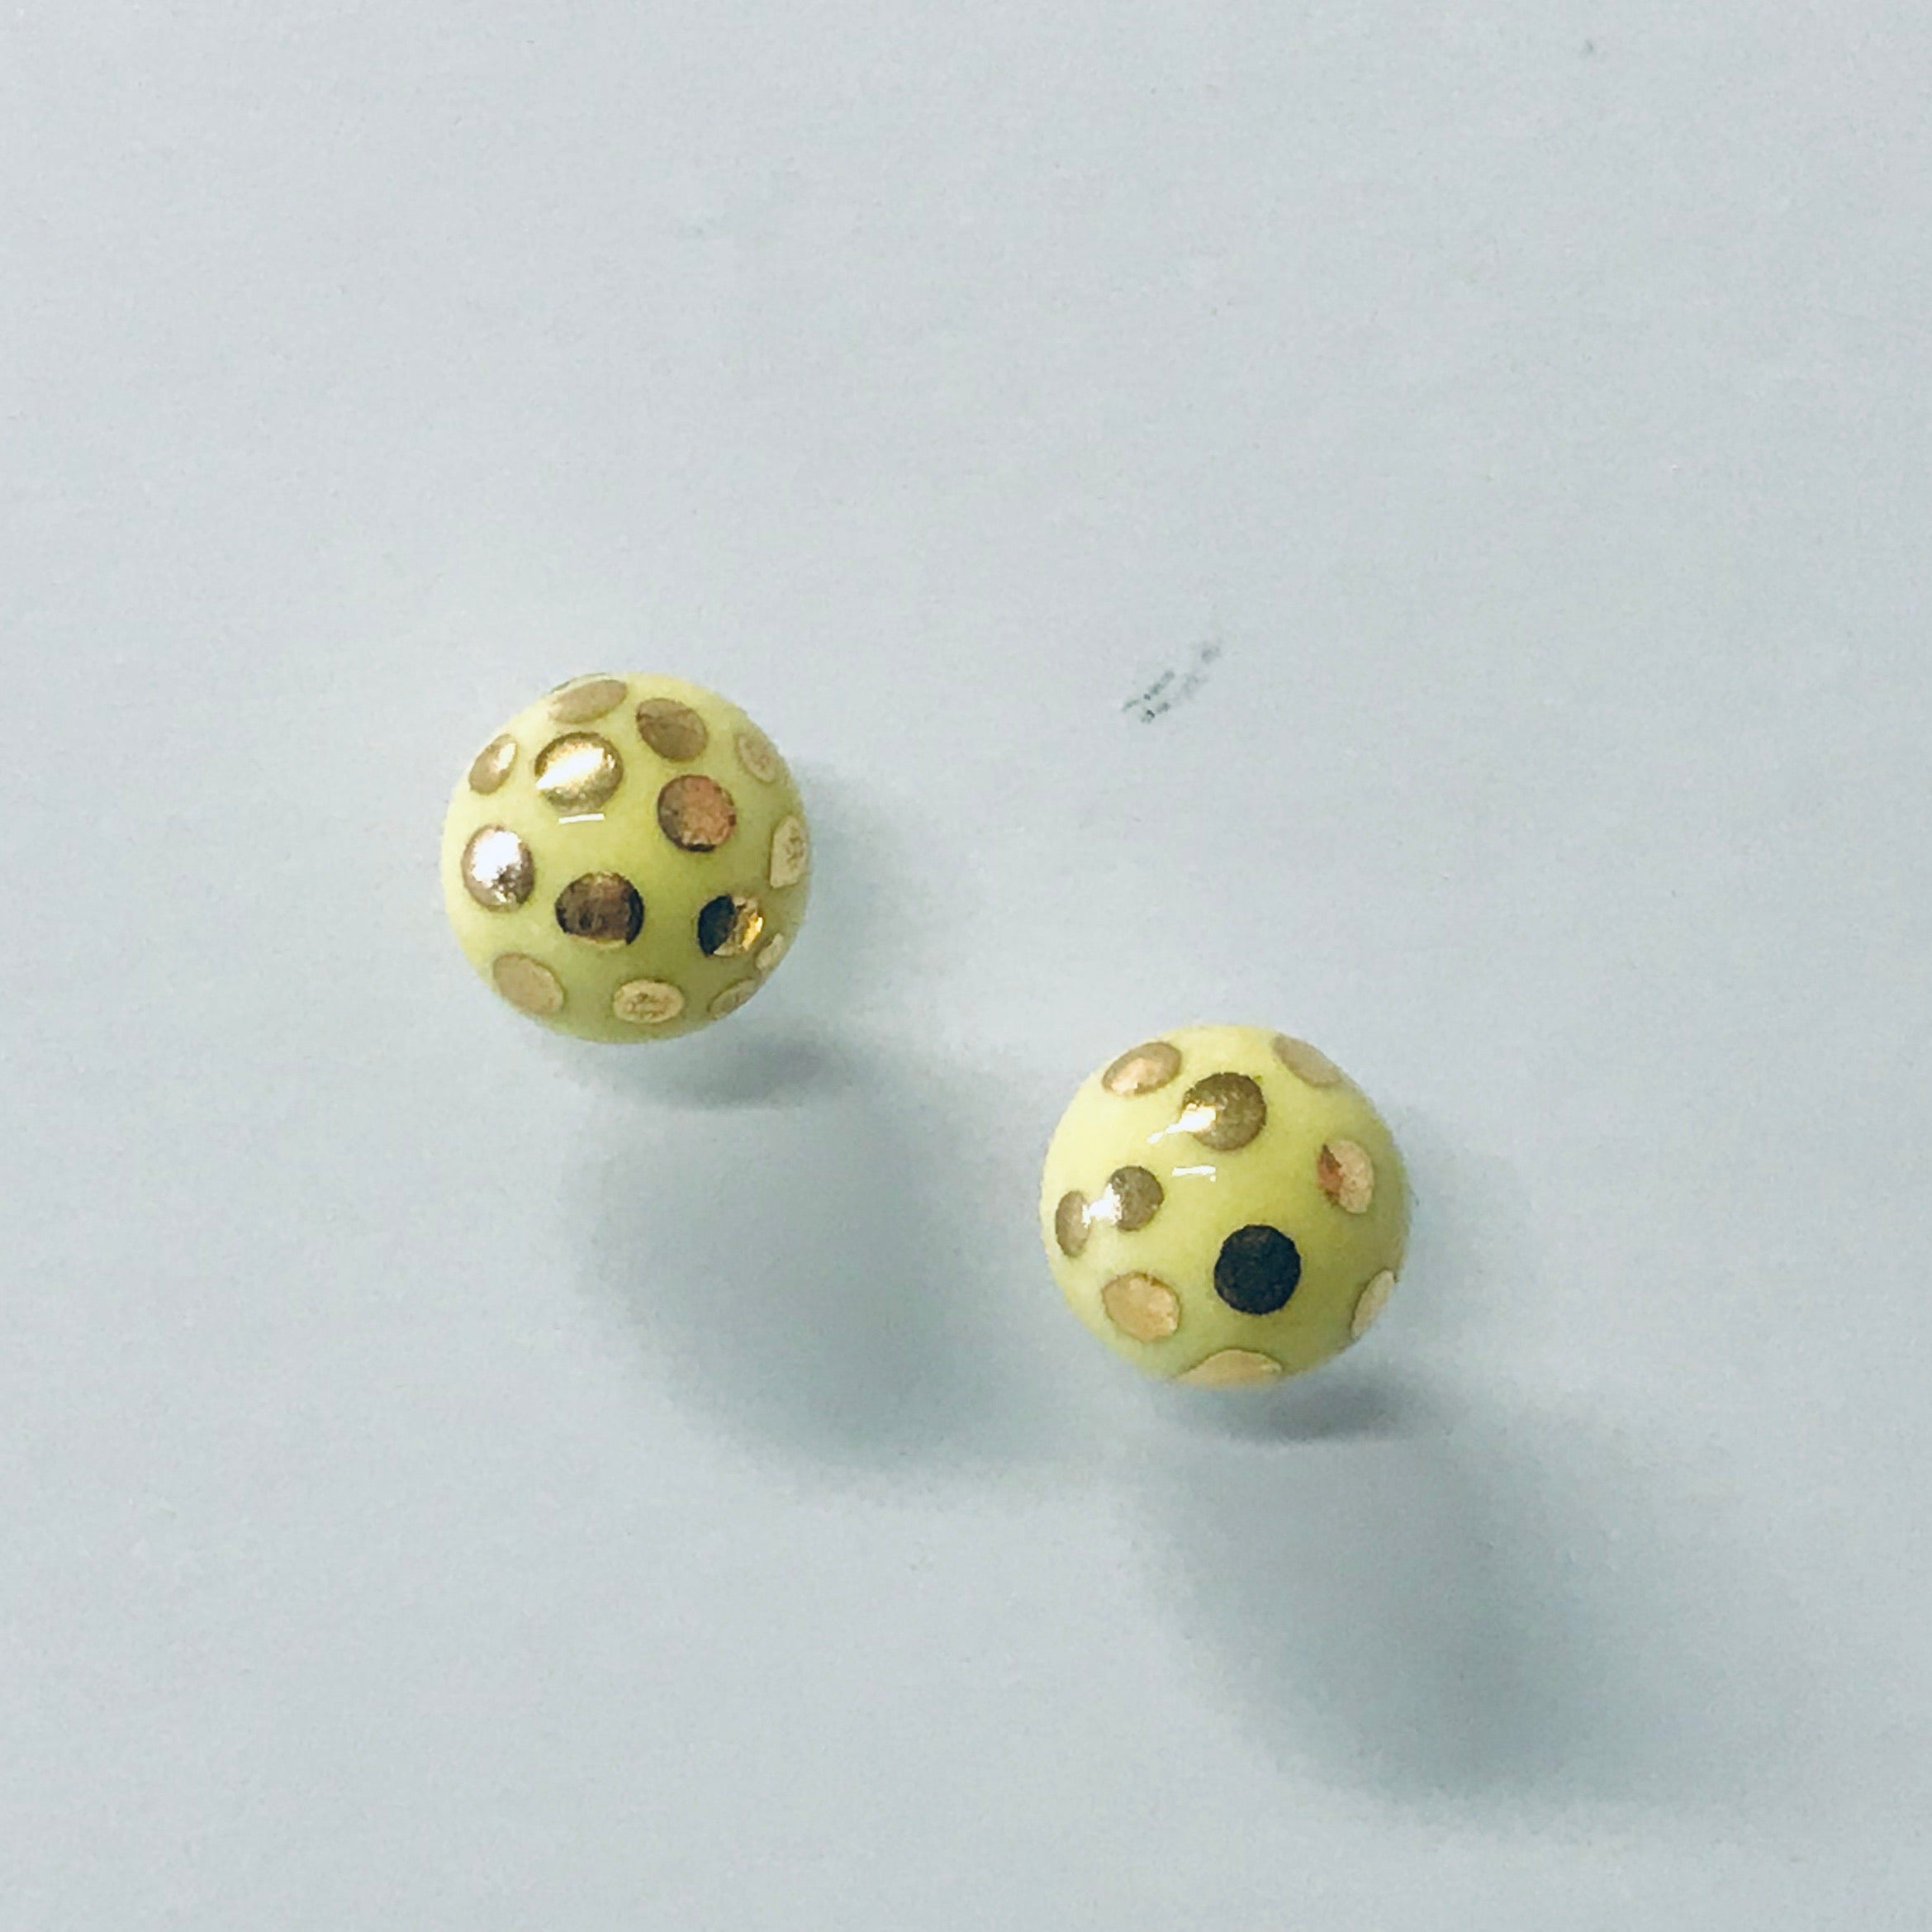 Hand painted Ceramic Stud Earrings - extra small